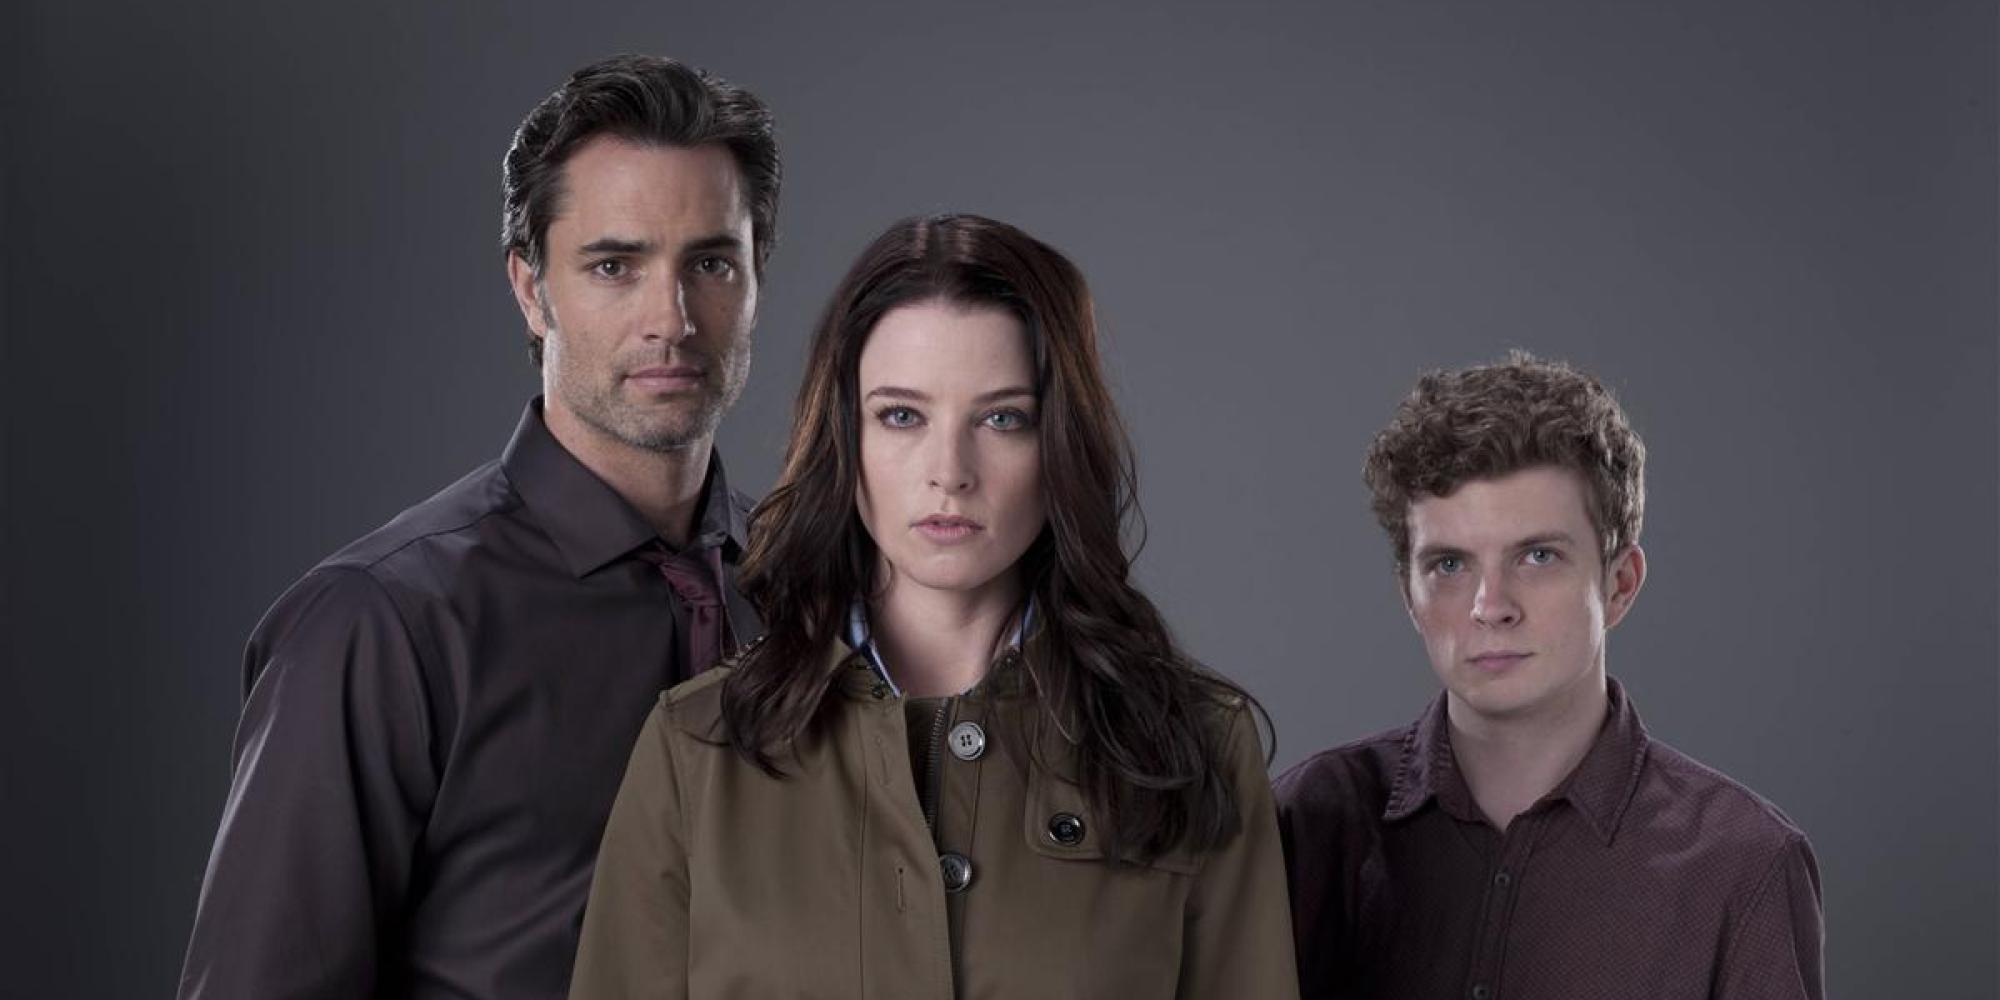 Continuum Season 3 When Where Can I Watch In Canada